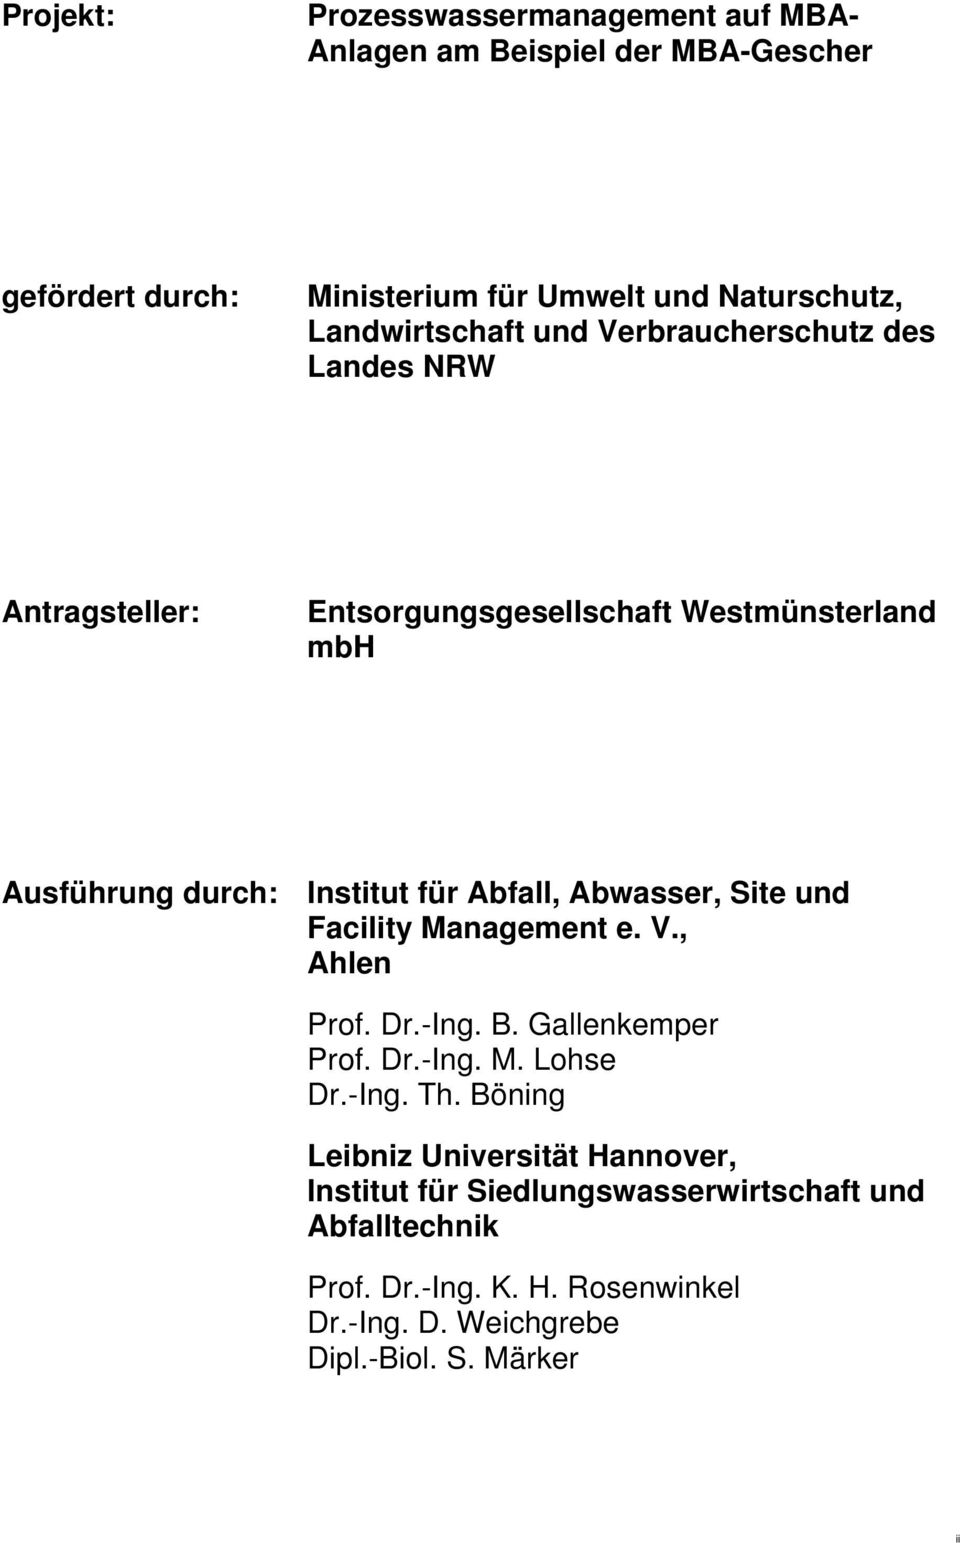 Abfall, Abwasser, Site und Facility Management e. V., Ahlen Prof. Dr.-Ing. B. Gallenkemper Prof. Dr.-Ing. M. Lohse Dr.-Ing. Th.